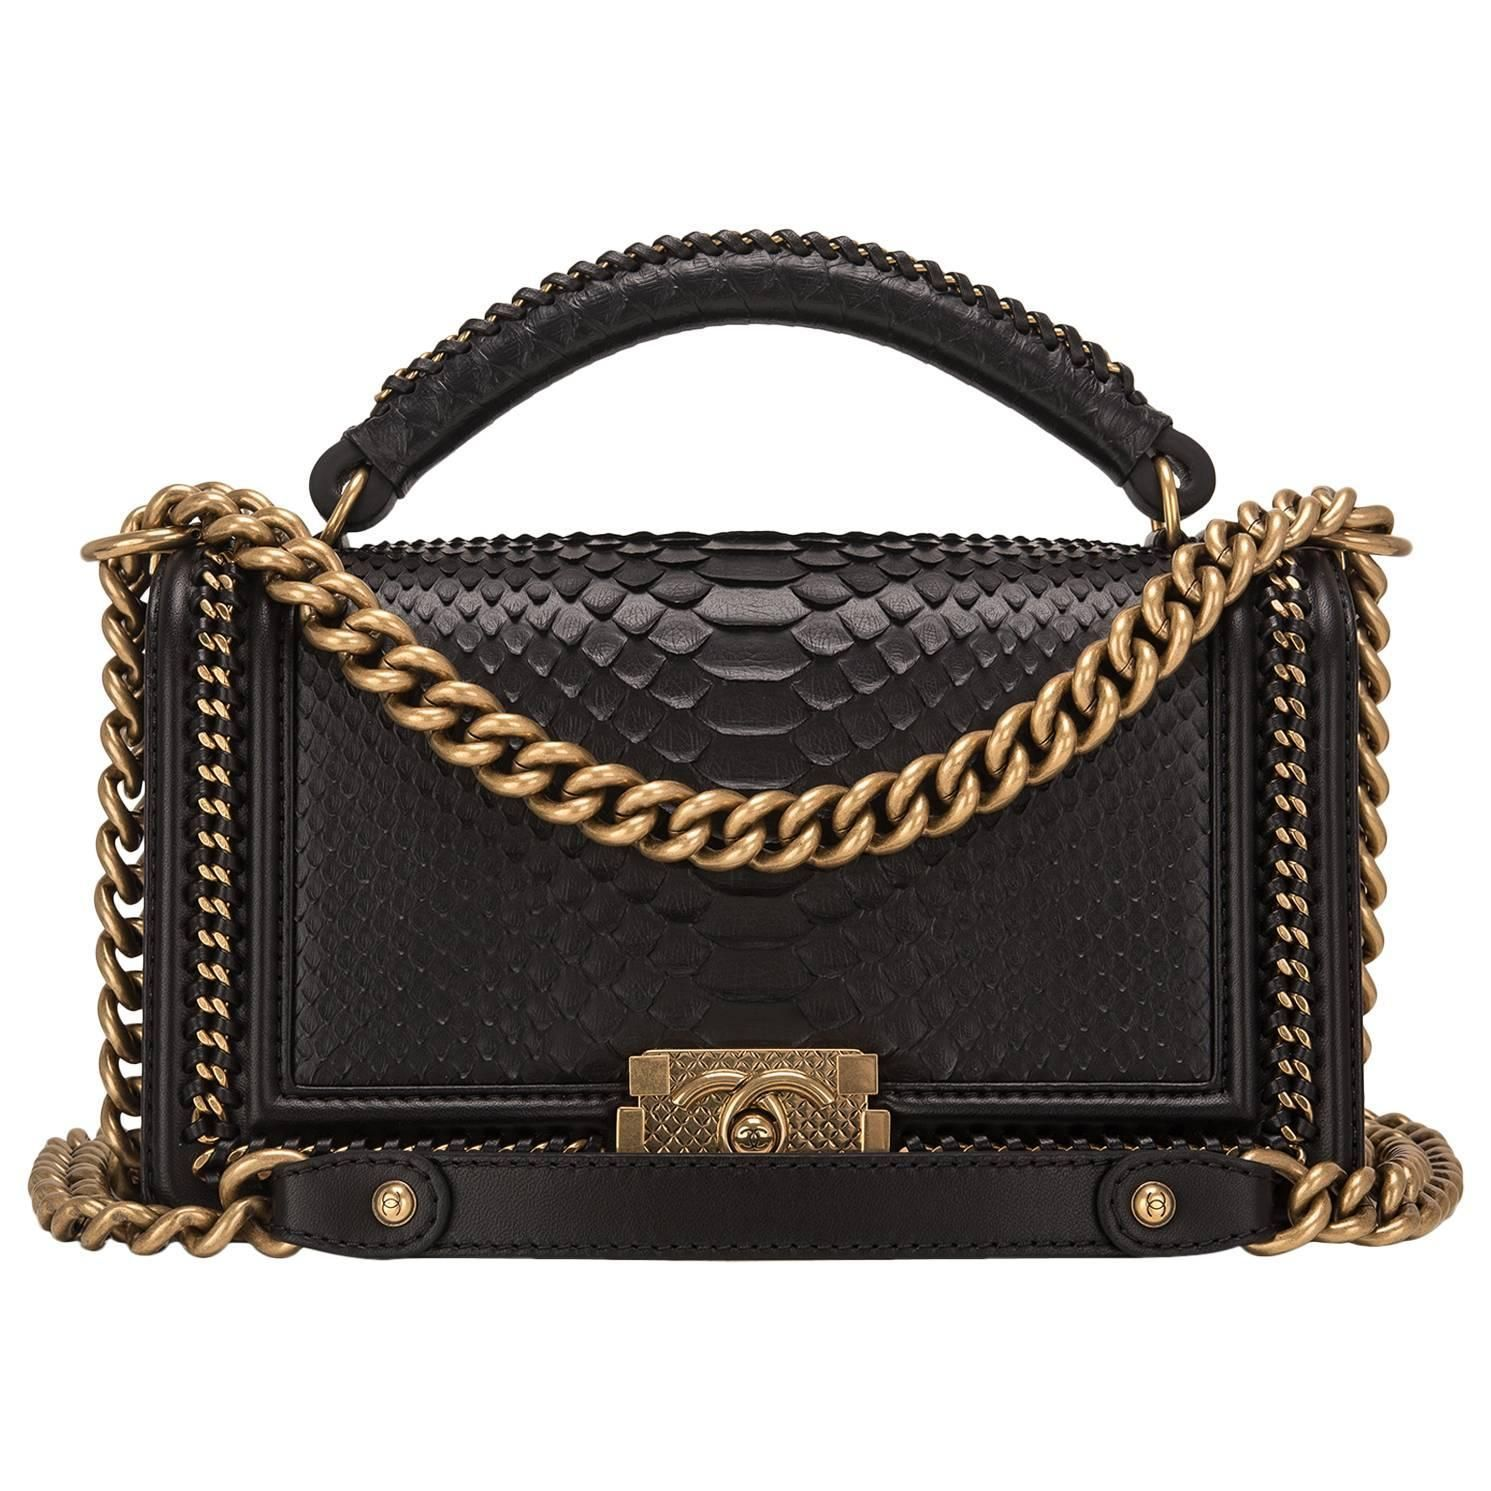 c5b30d84473 Chanel Black Python Medium Boy Bag with Handle   My 1stdibs ...